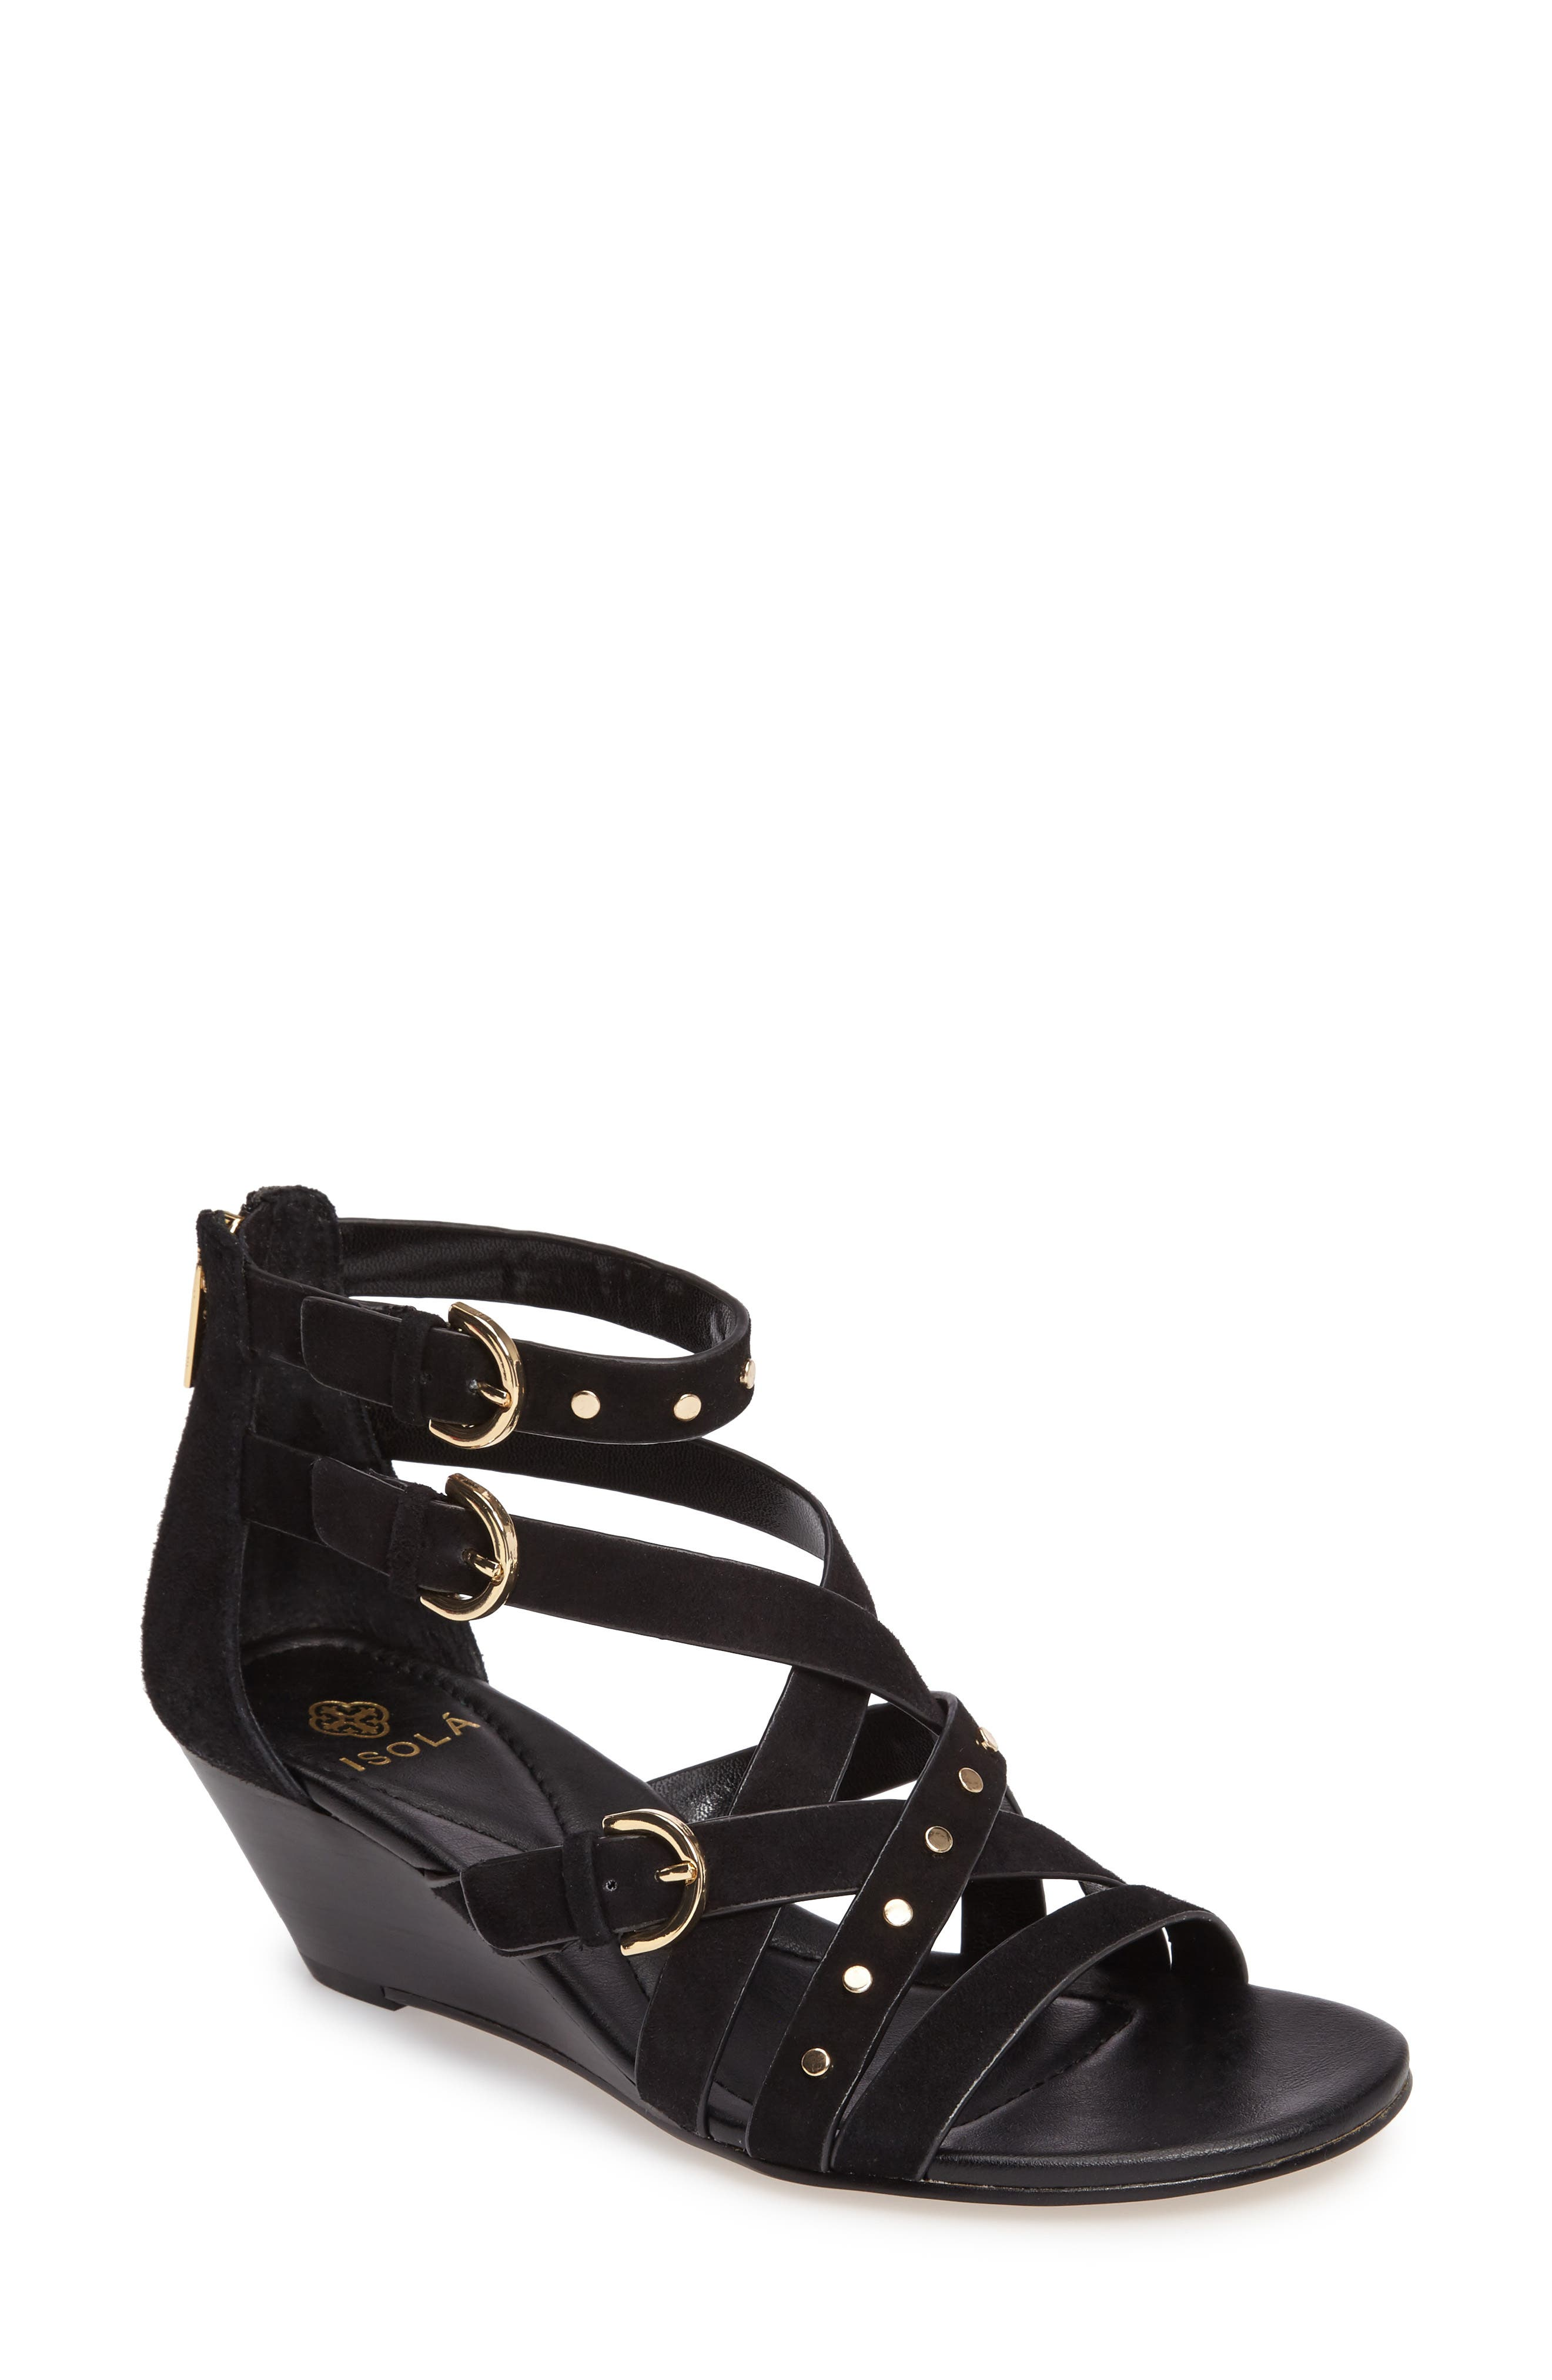 ISOLÁ Petra Strappy Wedge Sandal, Main, color, BLACK LEATHER